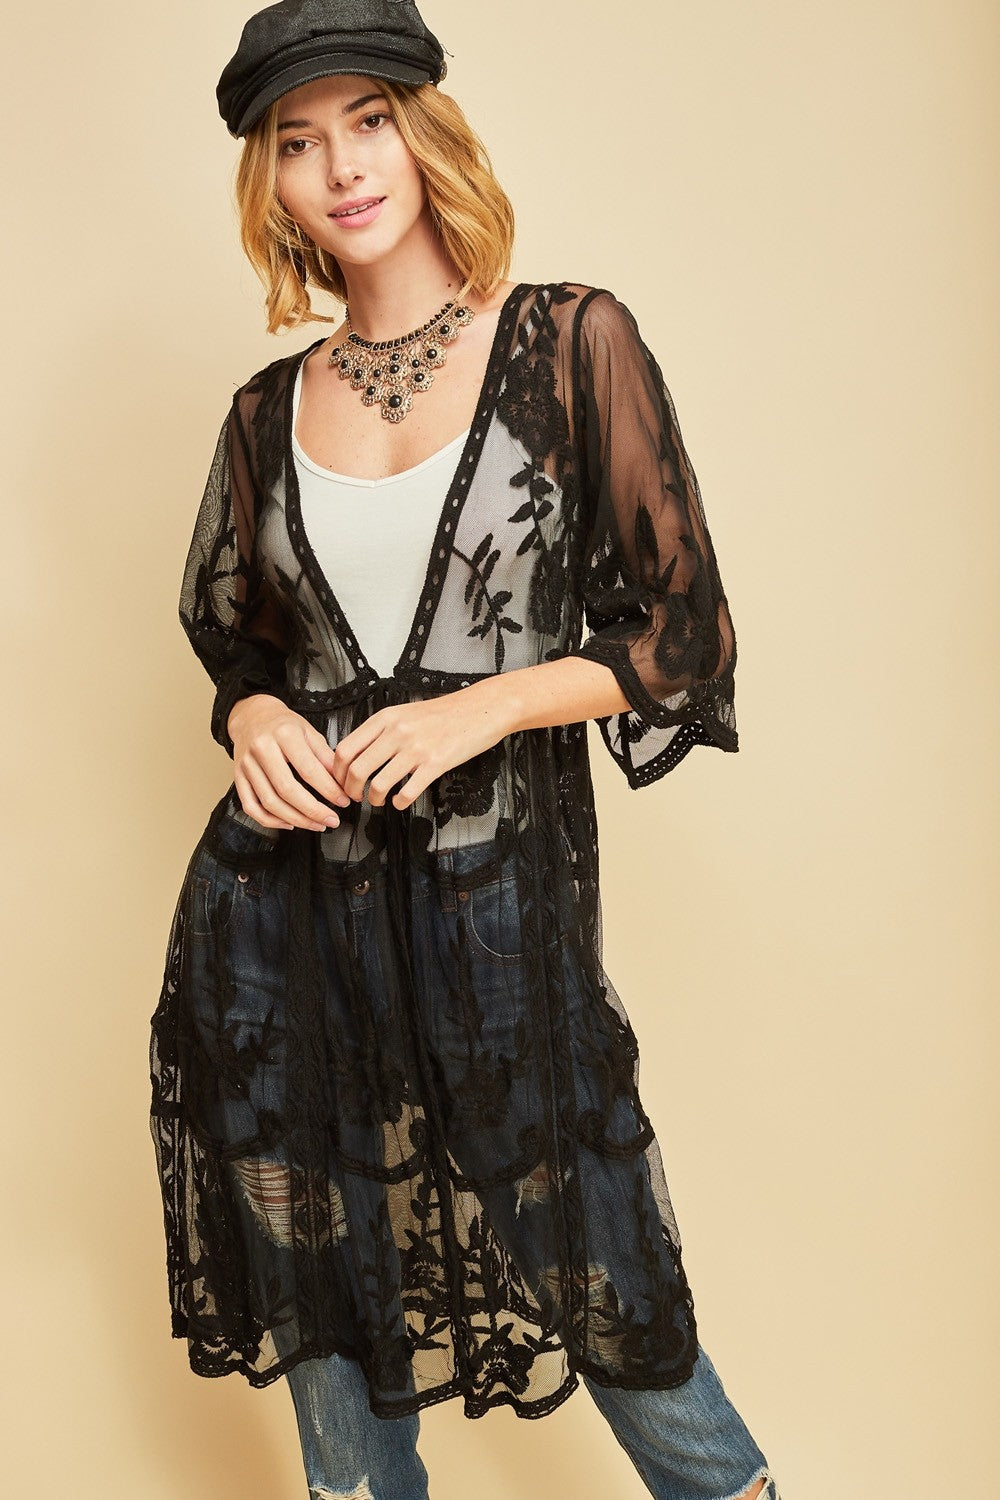 Front view young woman wearing black empire waist embroidered sheer cardigan